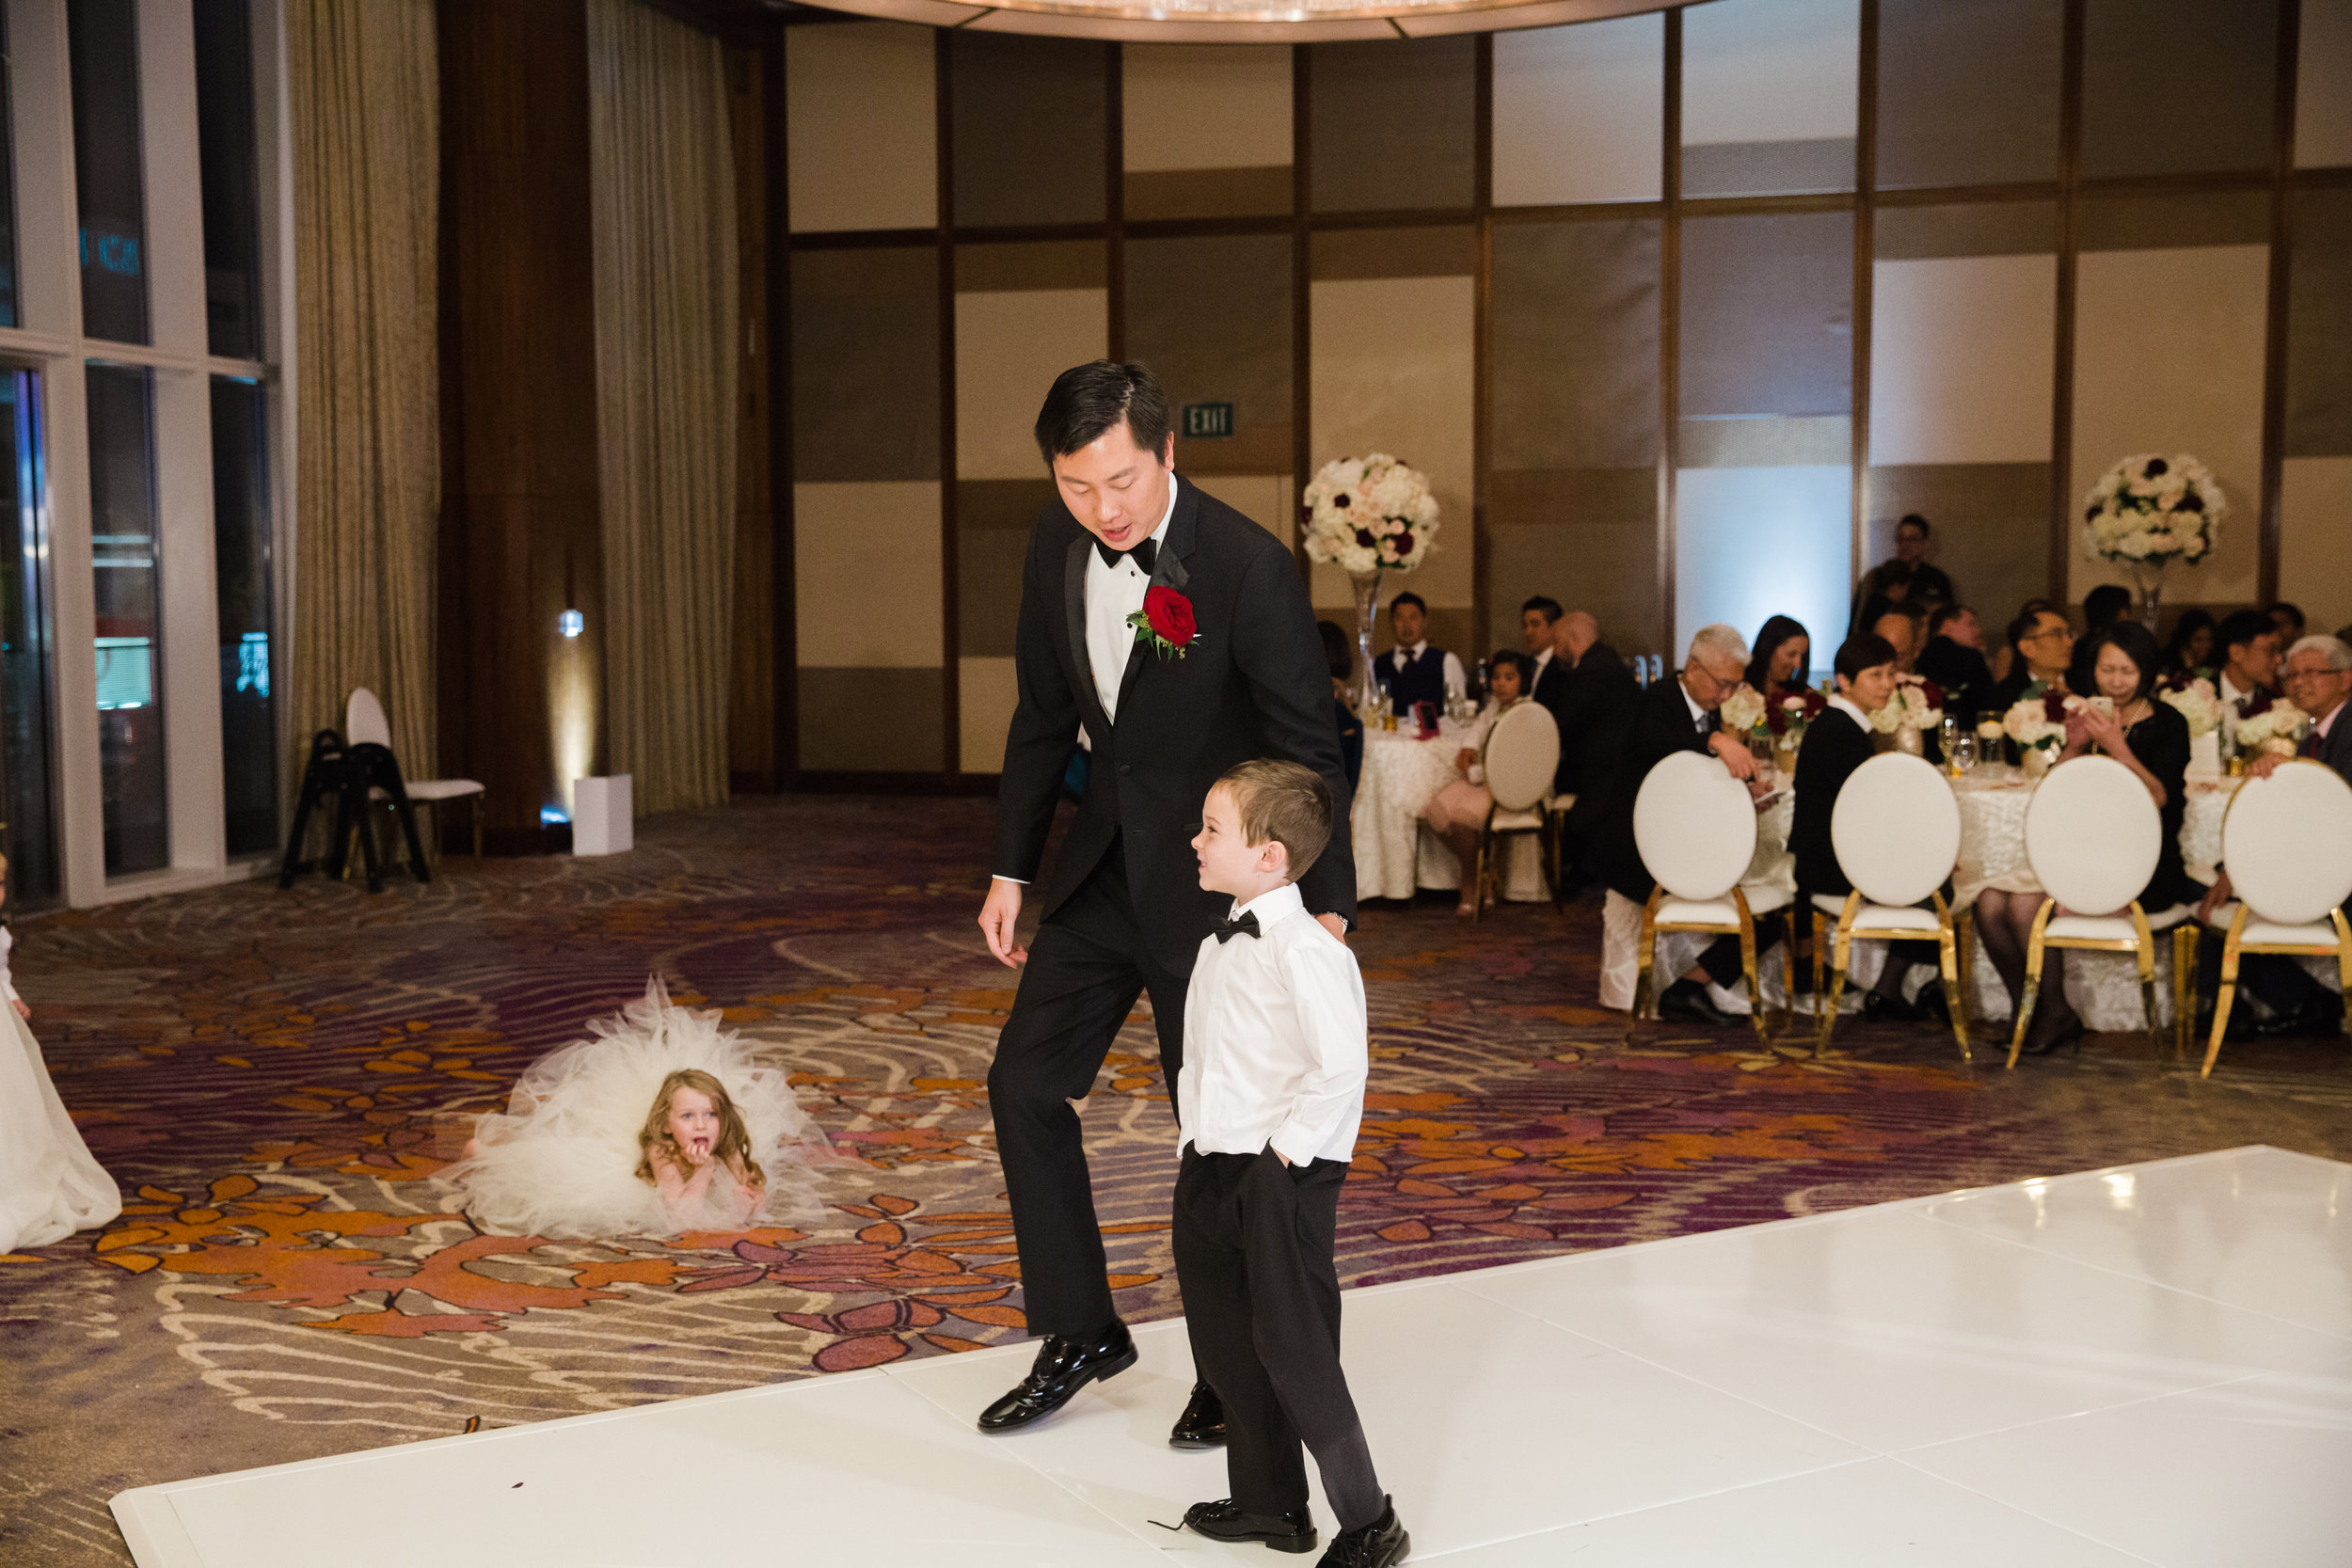 Ring bearer on the dance floor.Luxury wedding at the Mandarin Oriental with a color scheme of white, blush, and pops of wine red produced by Las Vegas Wedding Planner Andrea Eppolito with photos by Stephen Salazar Photography.